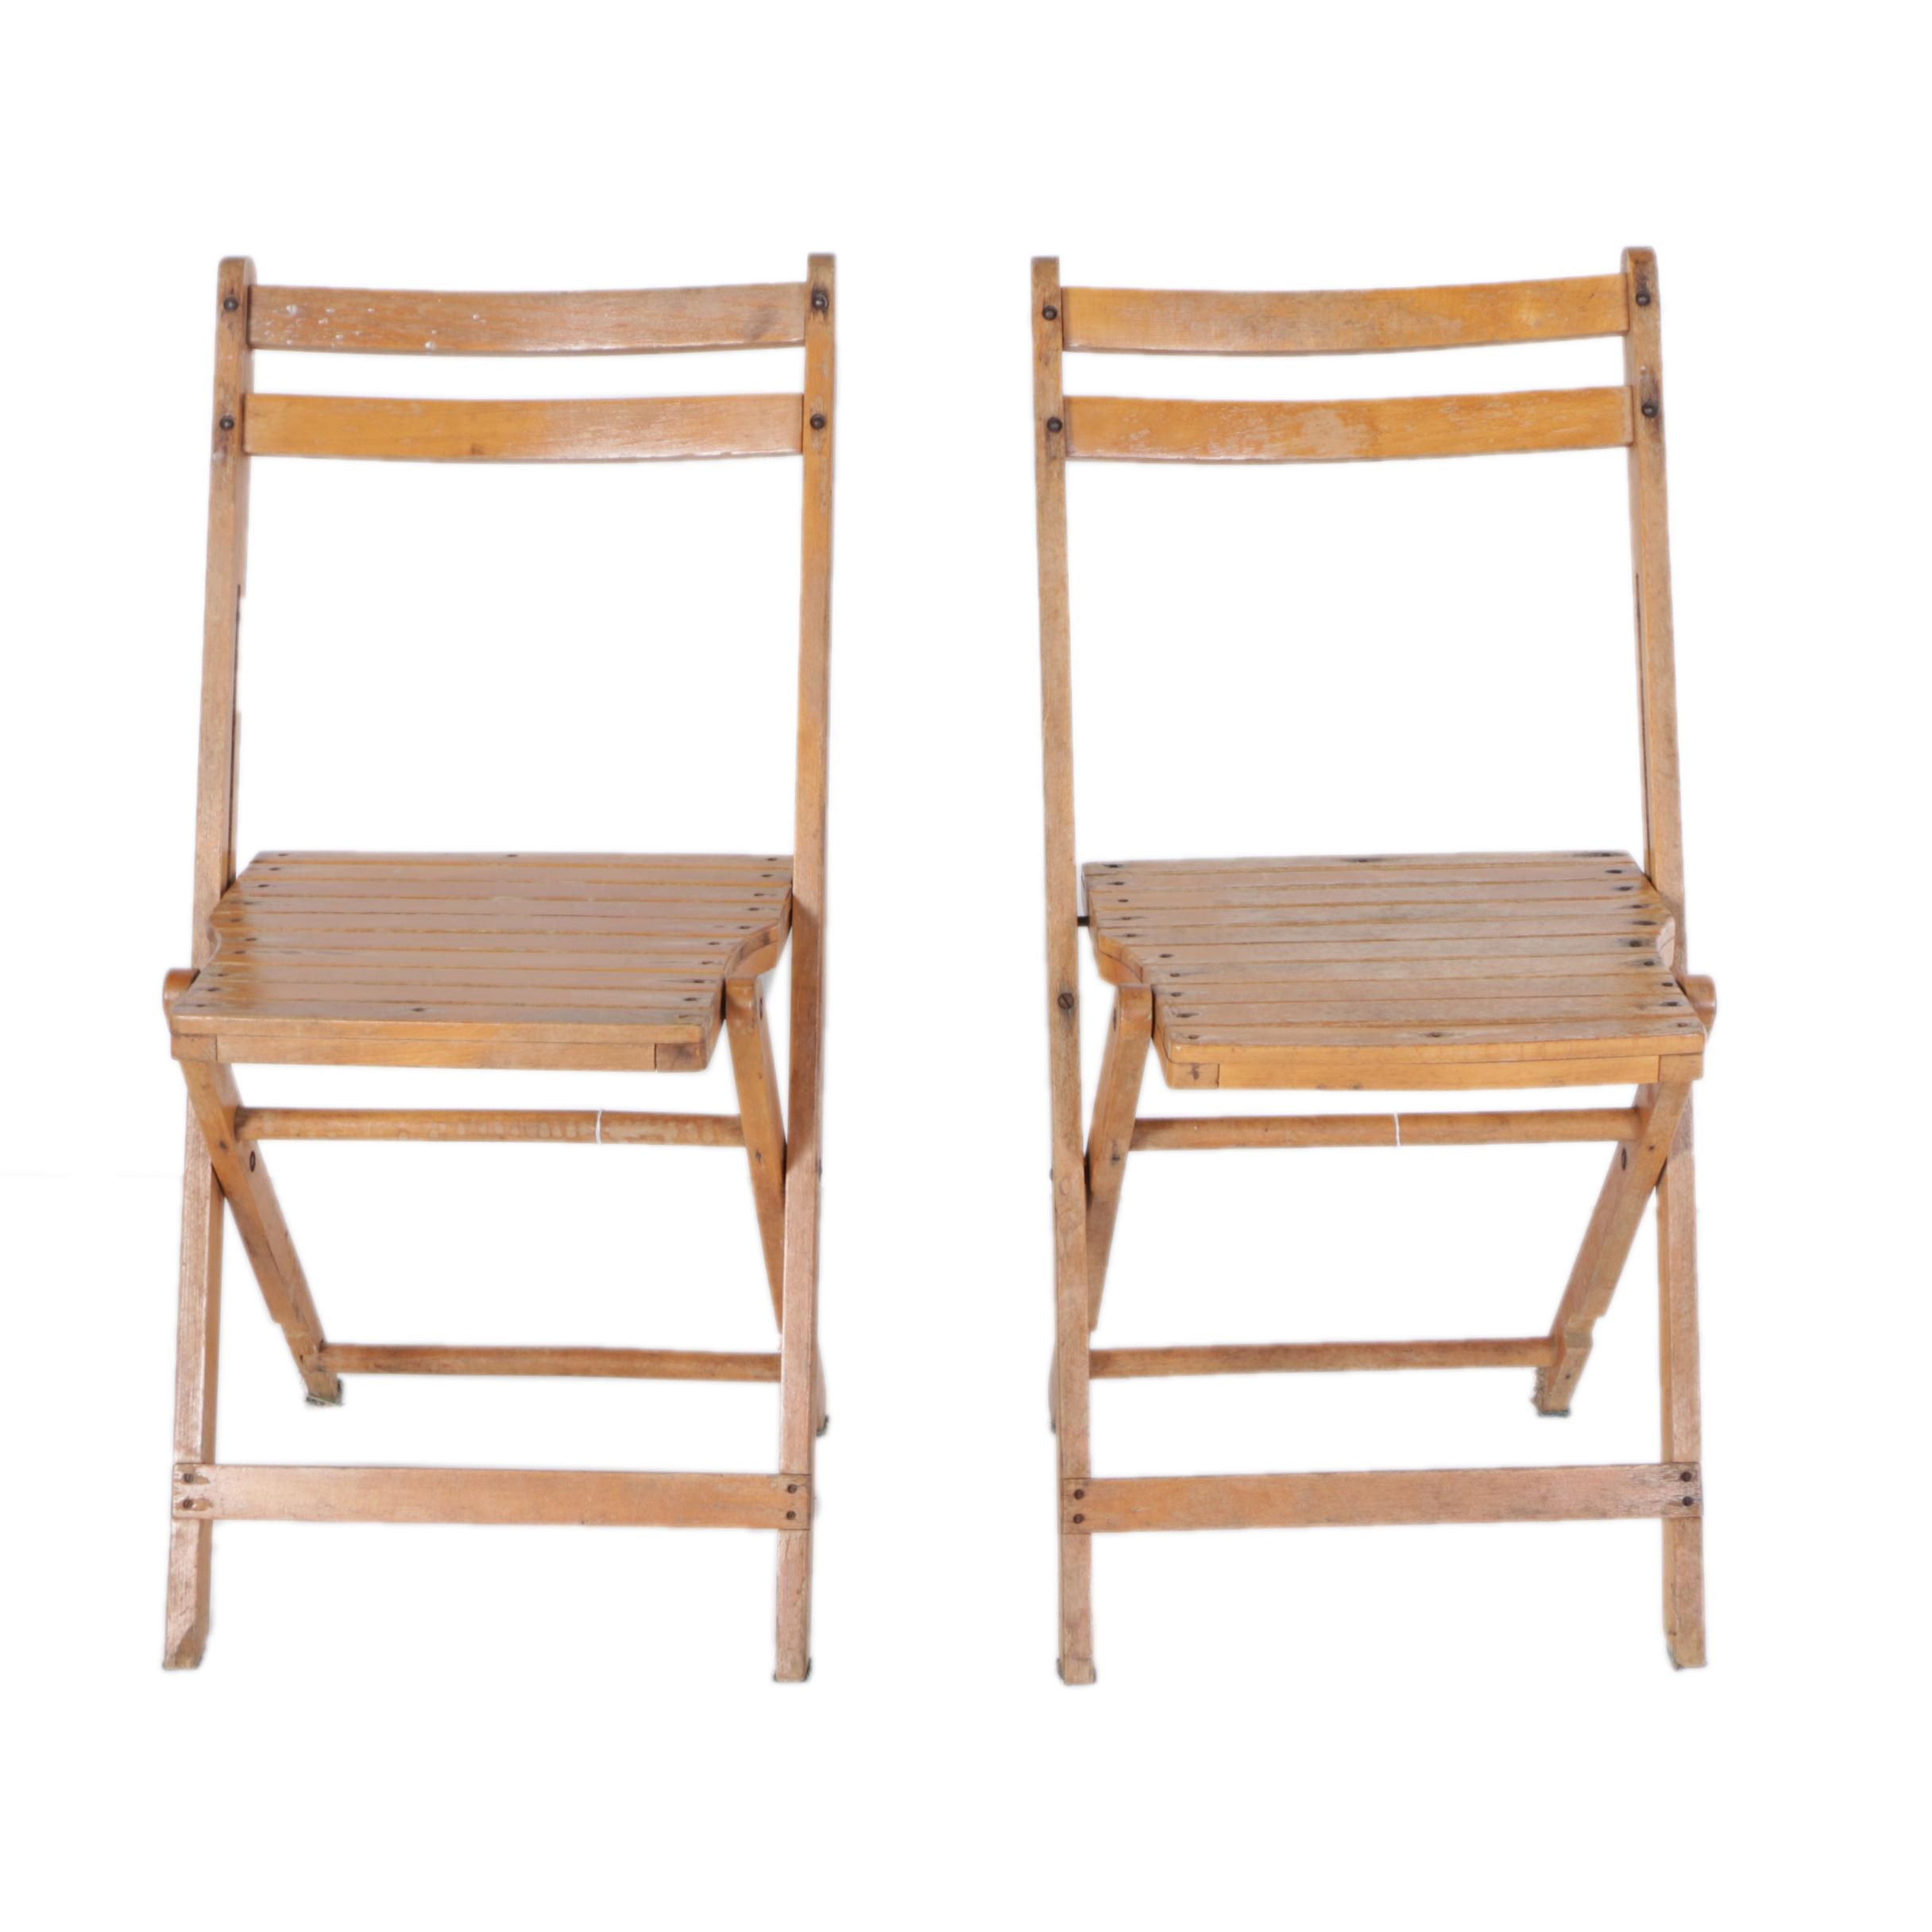 Pair of Wood Folding Chairs